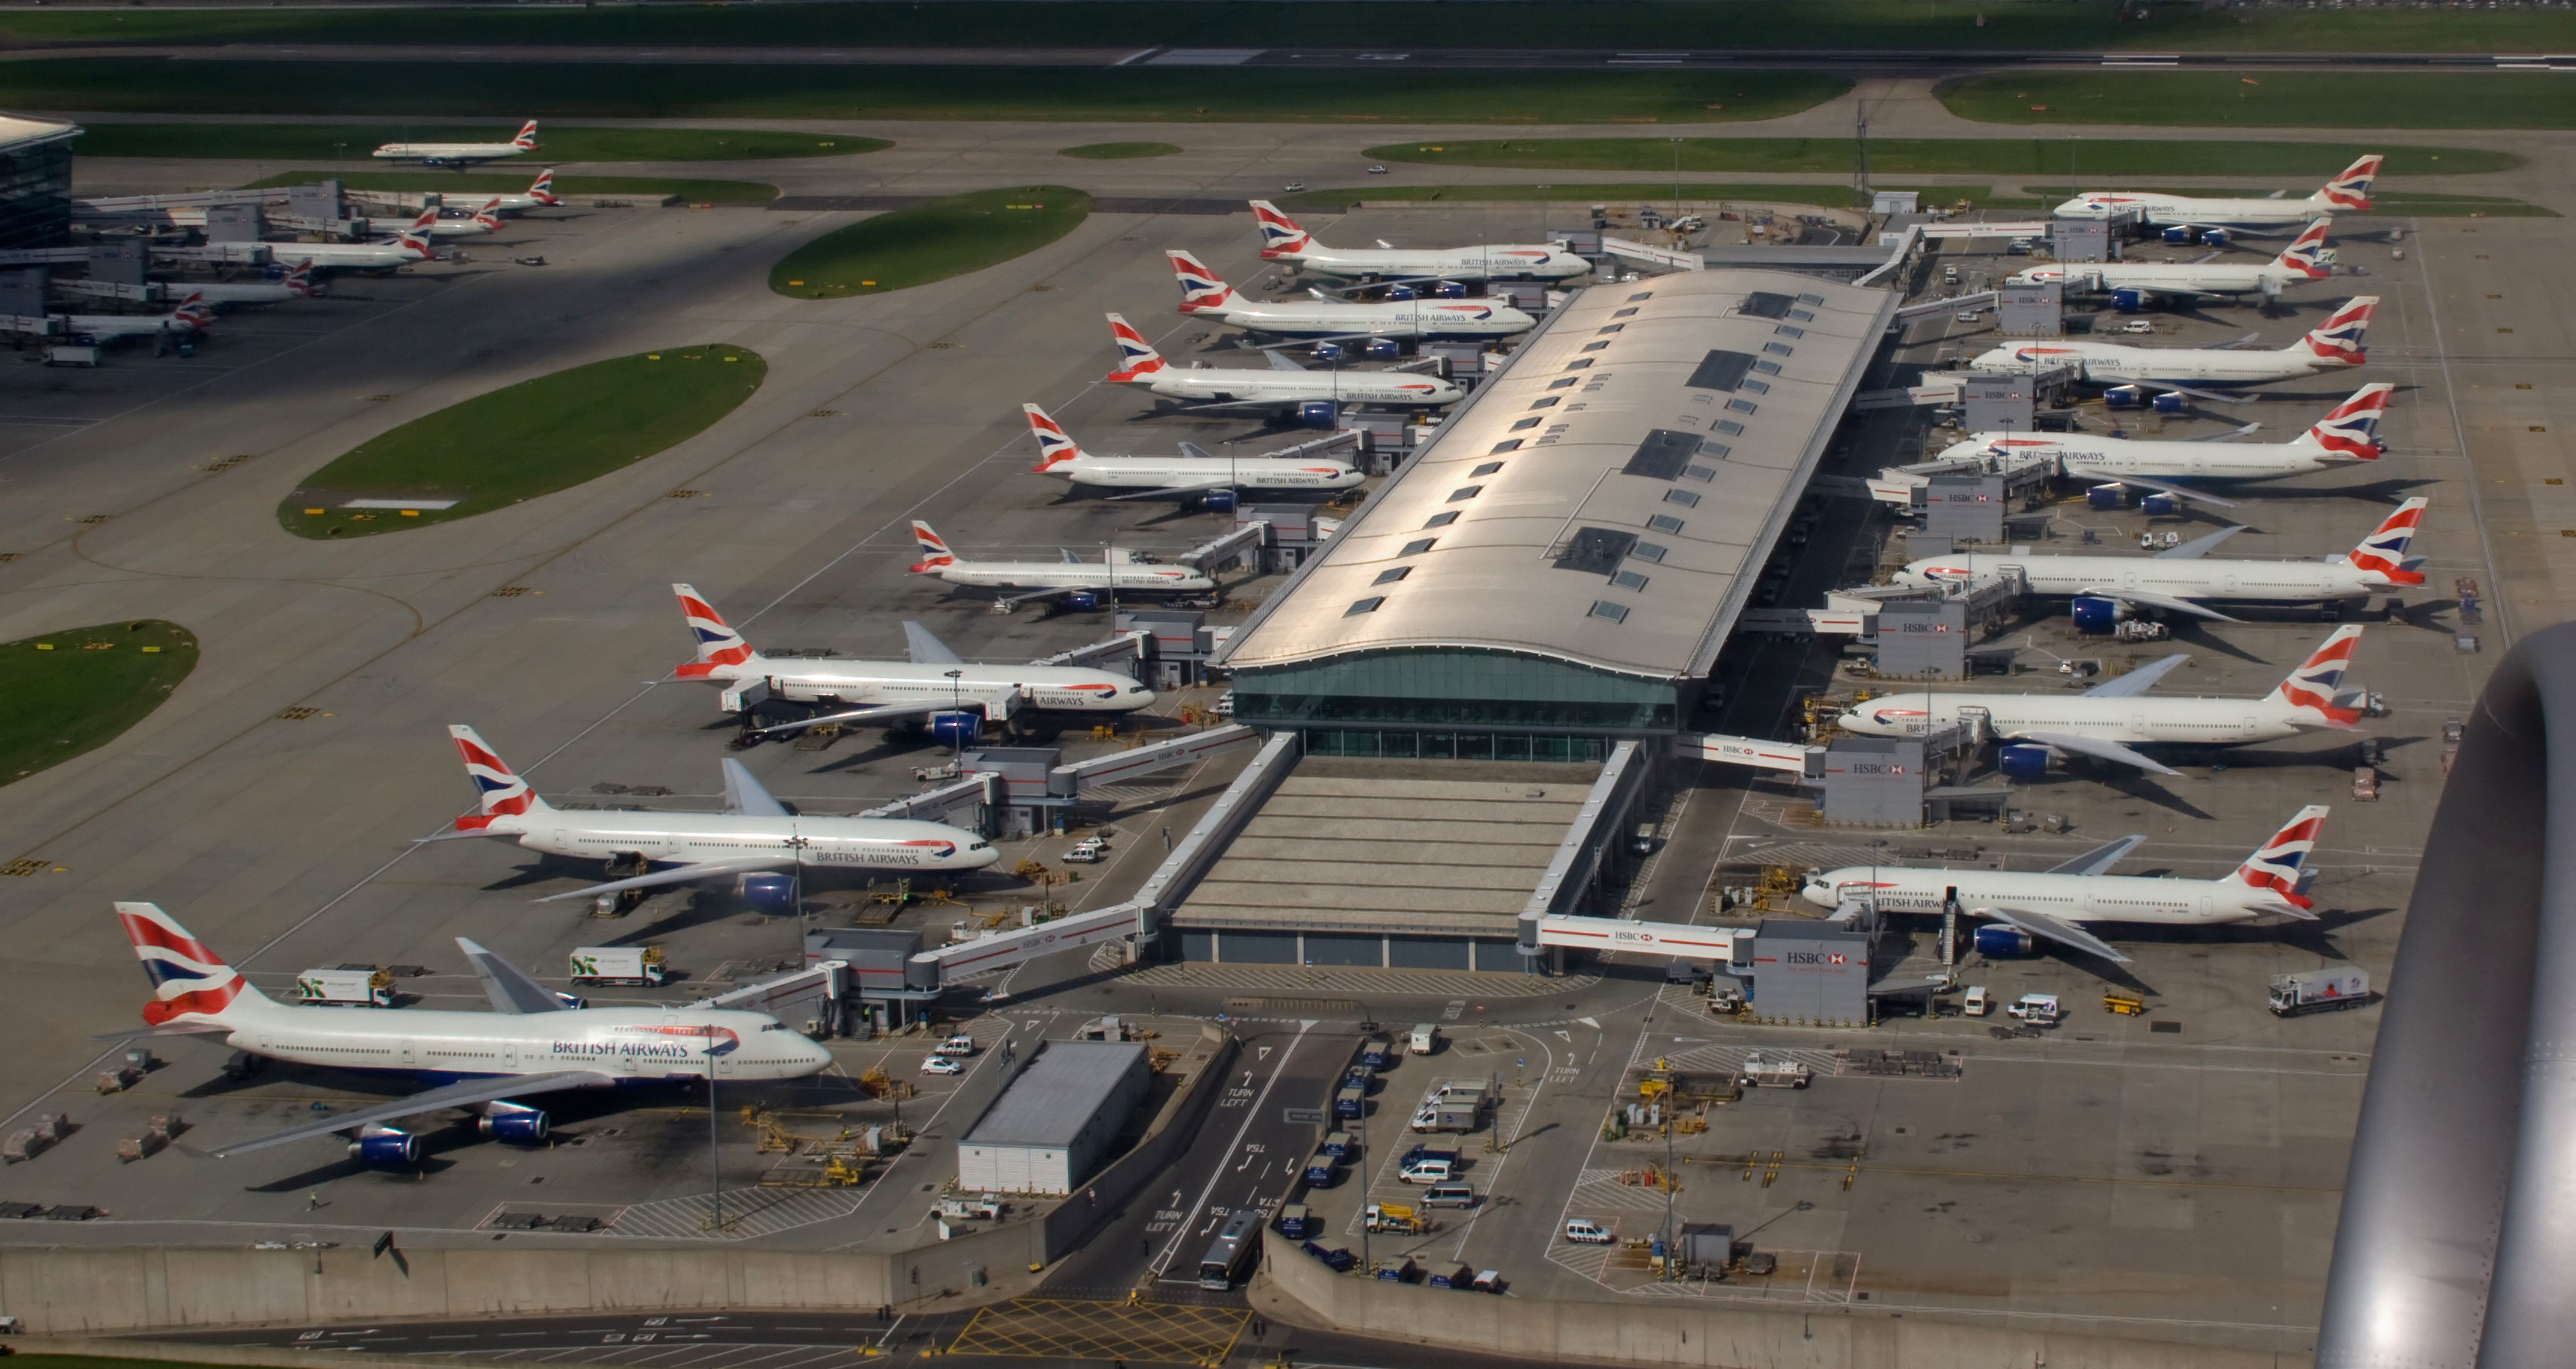 Could the Heathrow expansion be good for business?